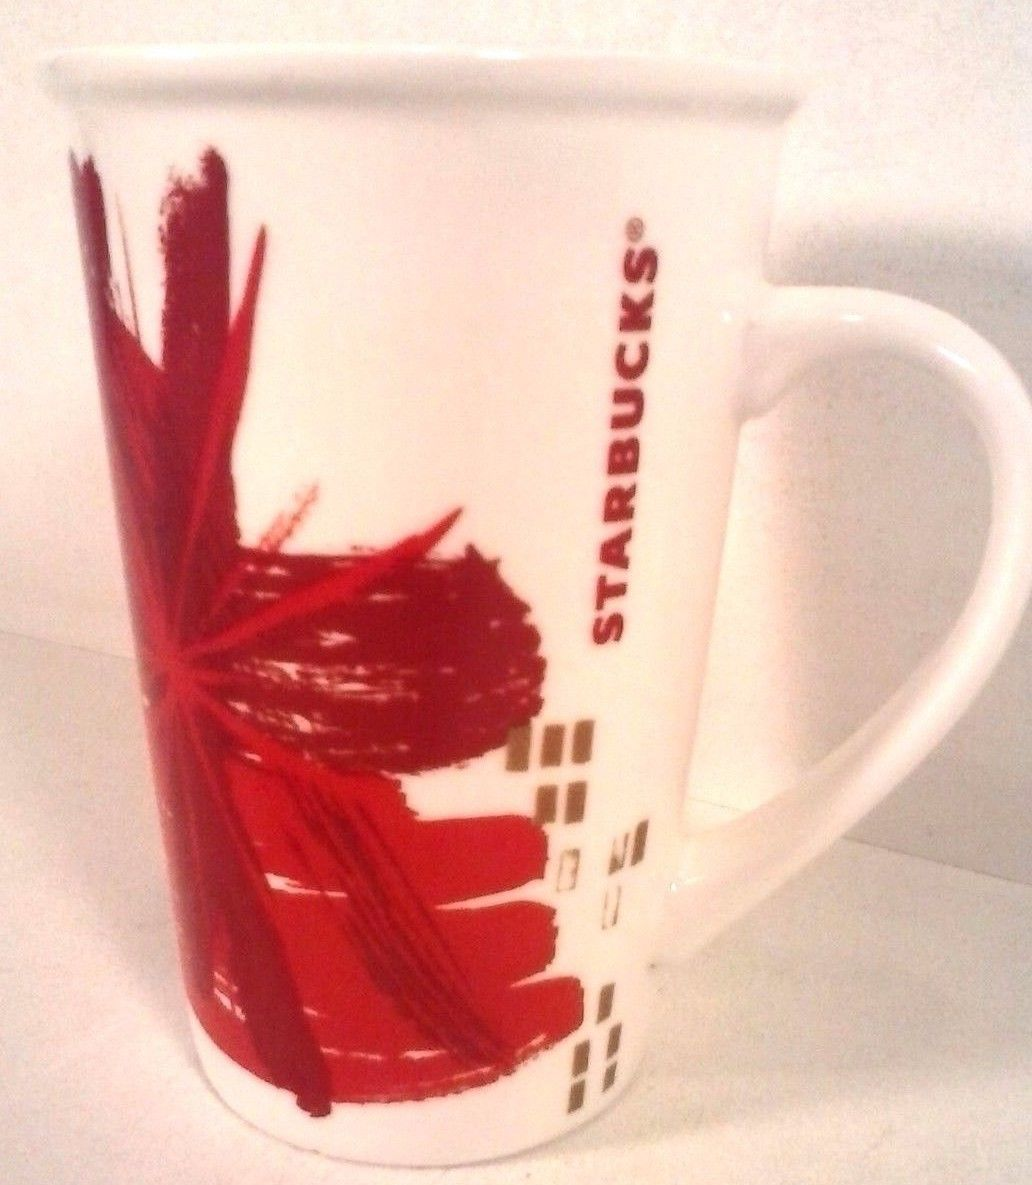 STARBUCKS COLLECTIBLE CERAMIC CHRISTMAS COFFEE MUG RED WHITE 2014, 12 OZ.